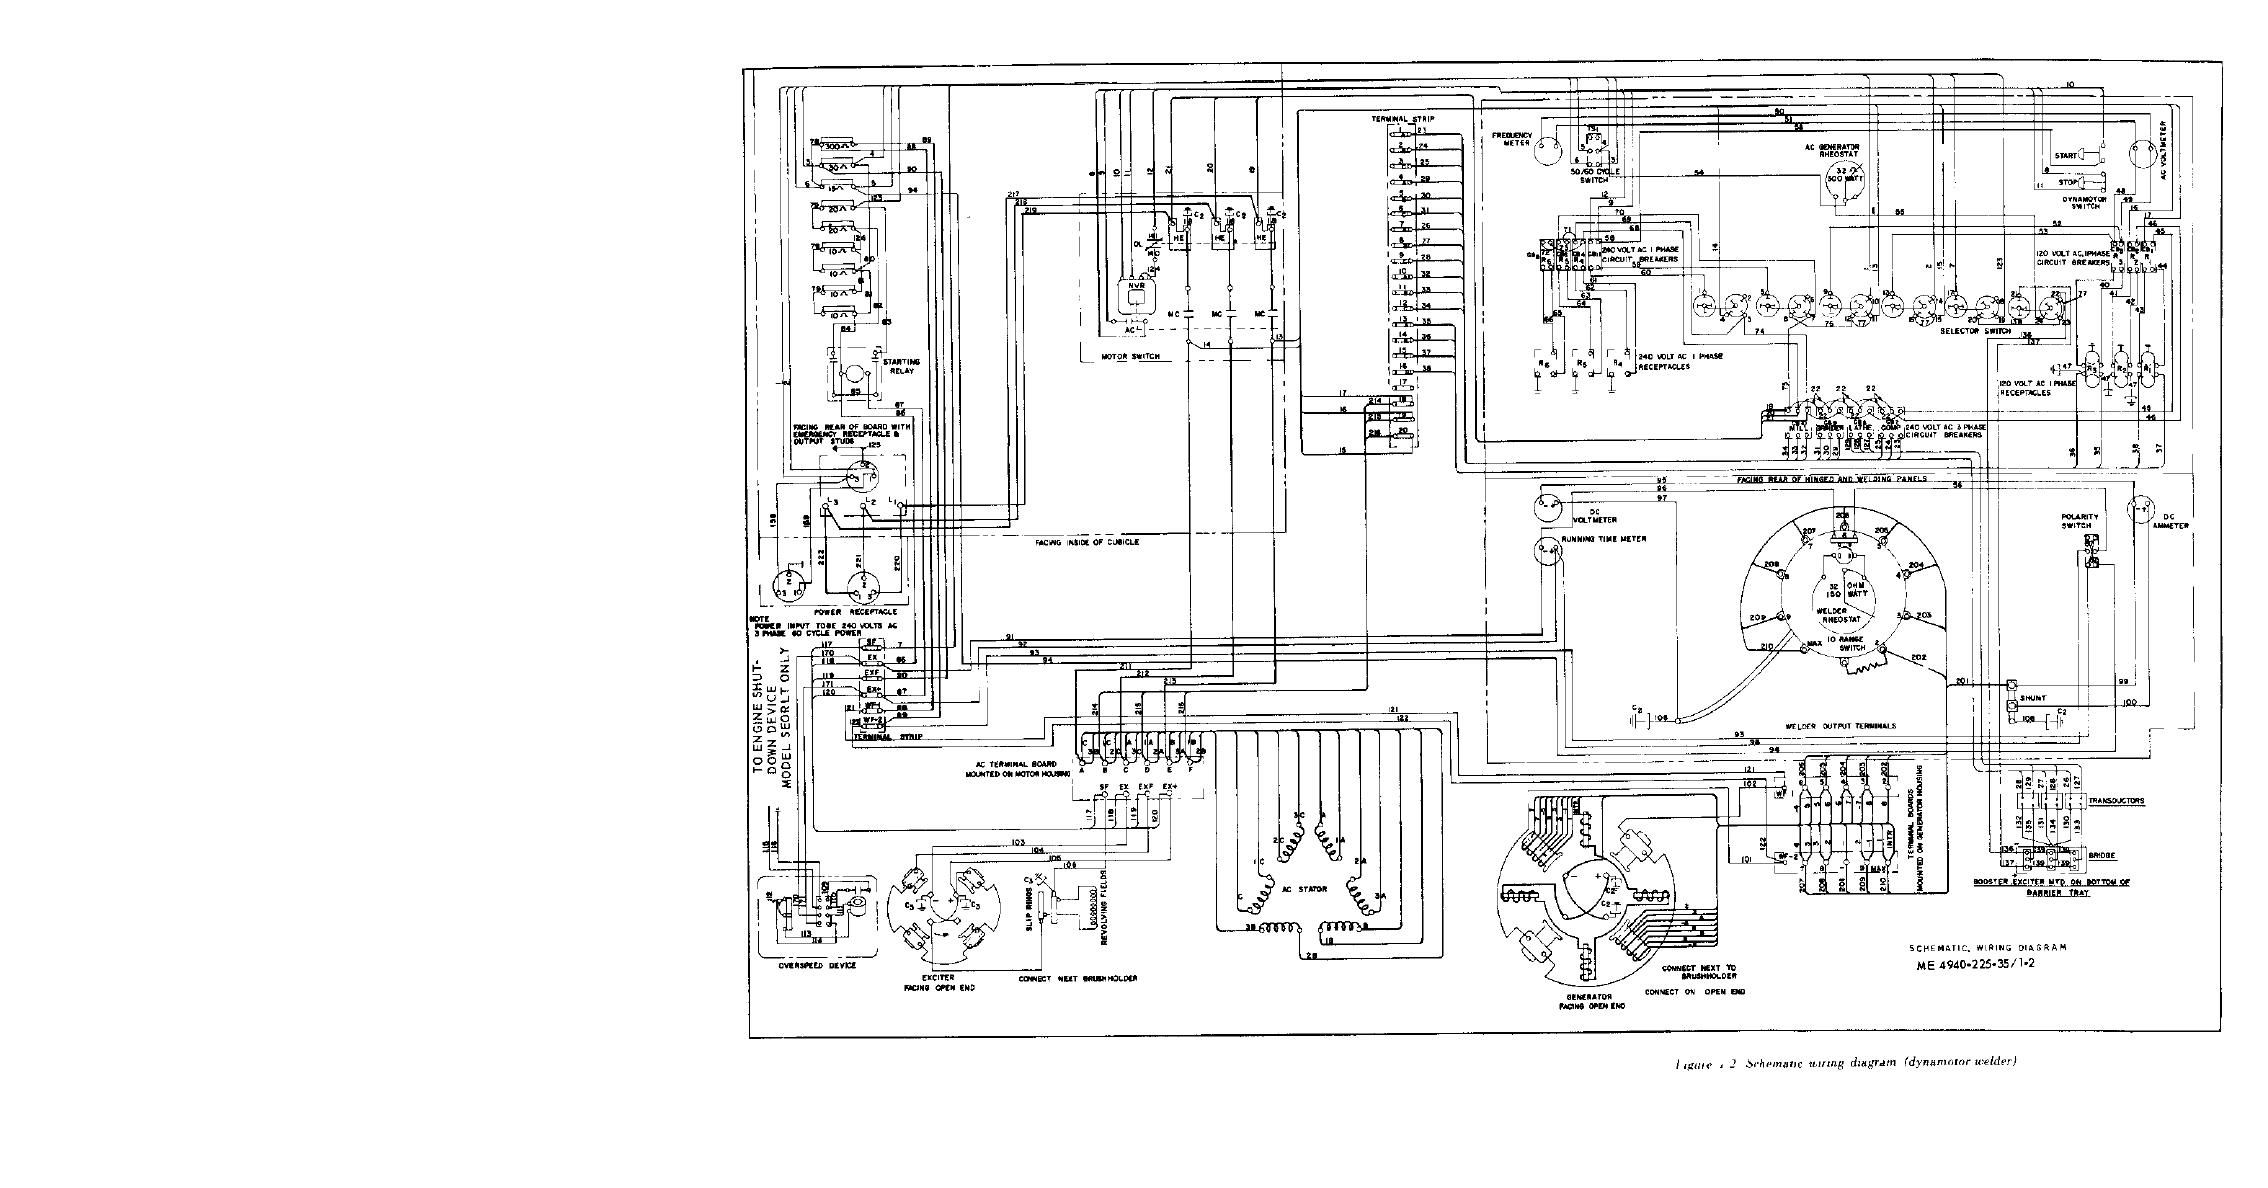 DIAGRAM] Lincoln Electric Welder Wiring Diagram Free Picture FULL Version  HD Quality Free Picture - LOANREPUPDATE.OLTH-GUILD.FRloanrepupdate.olth-guild.fr